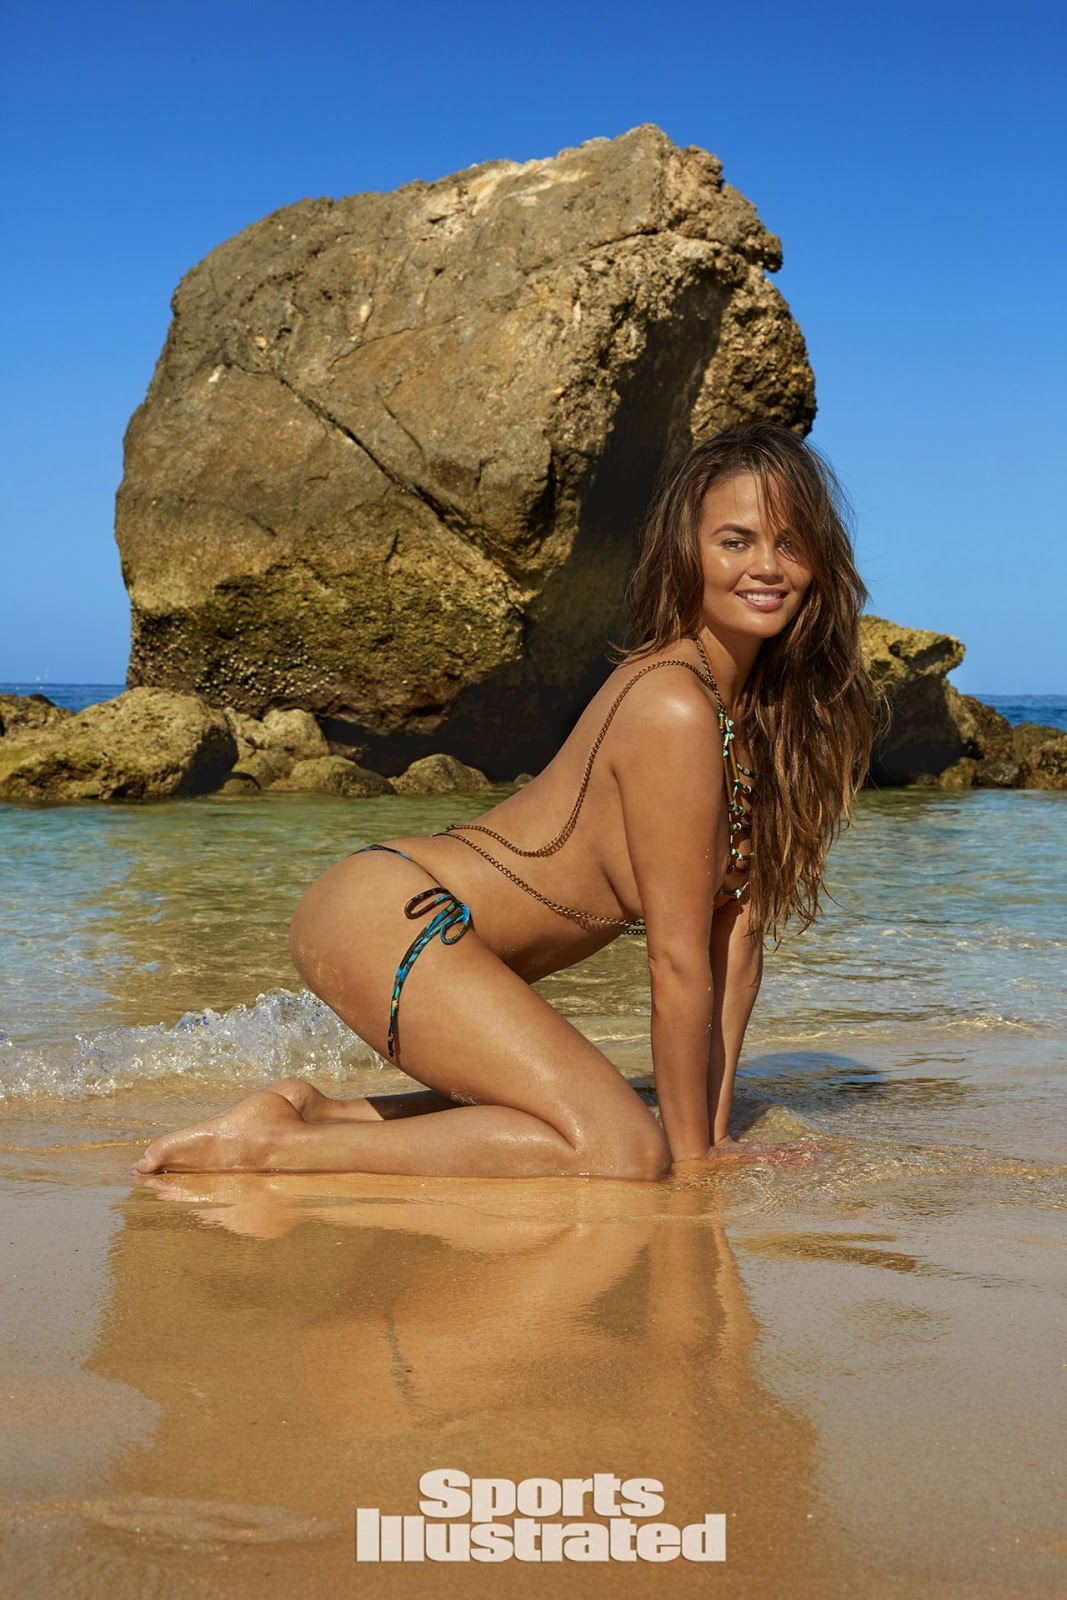 Chrissy Teigen - Sports Illustrated Swimsuit Issue 2017